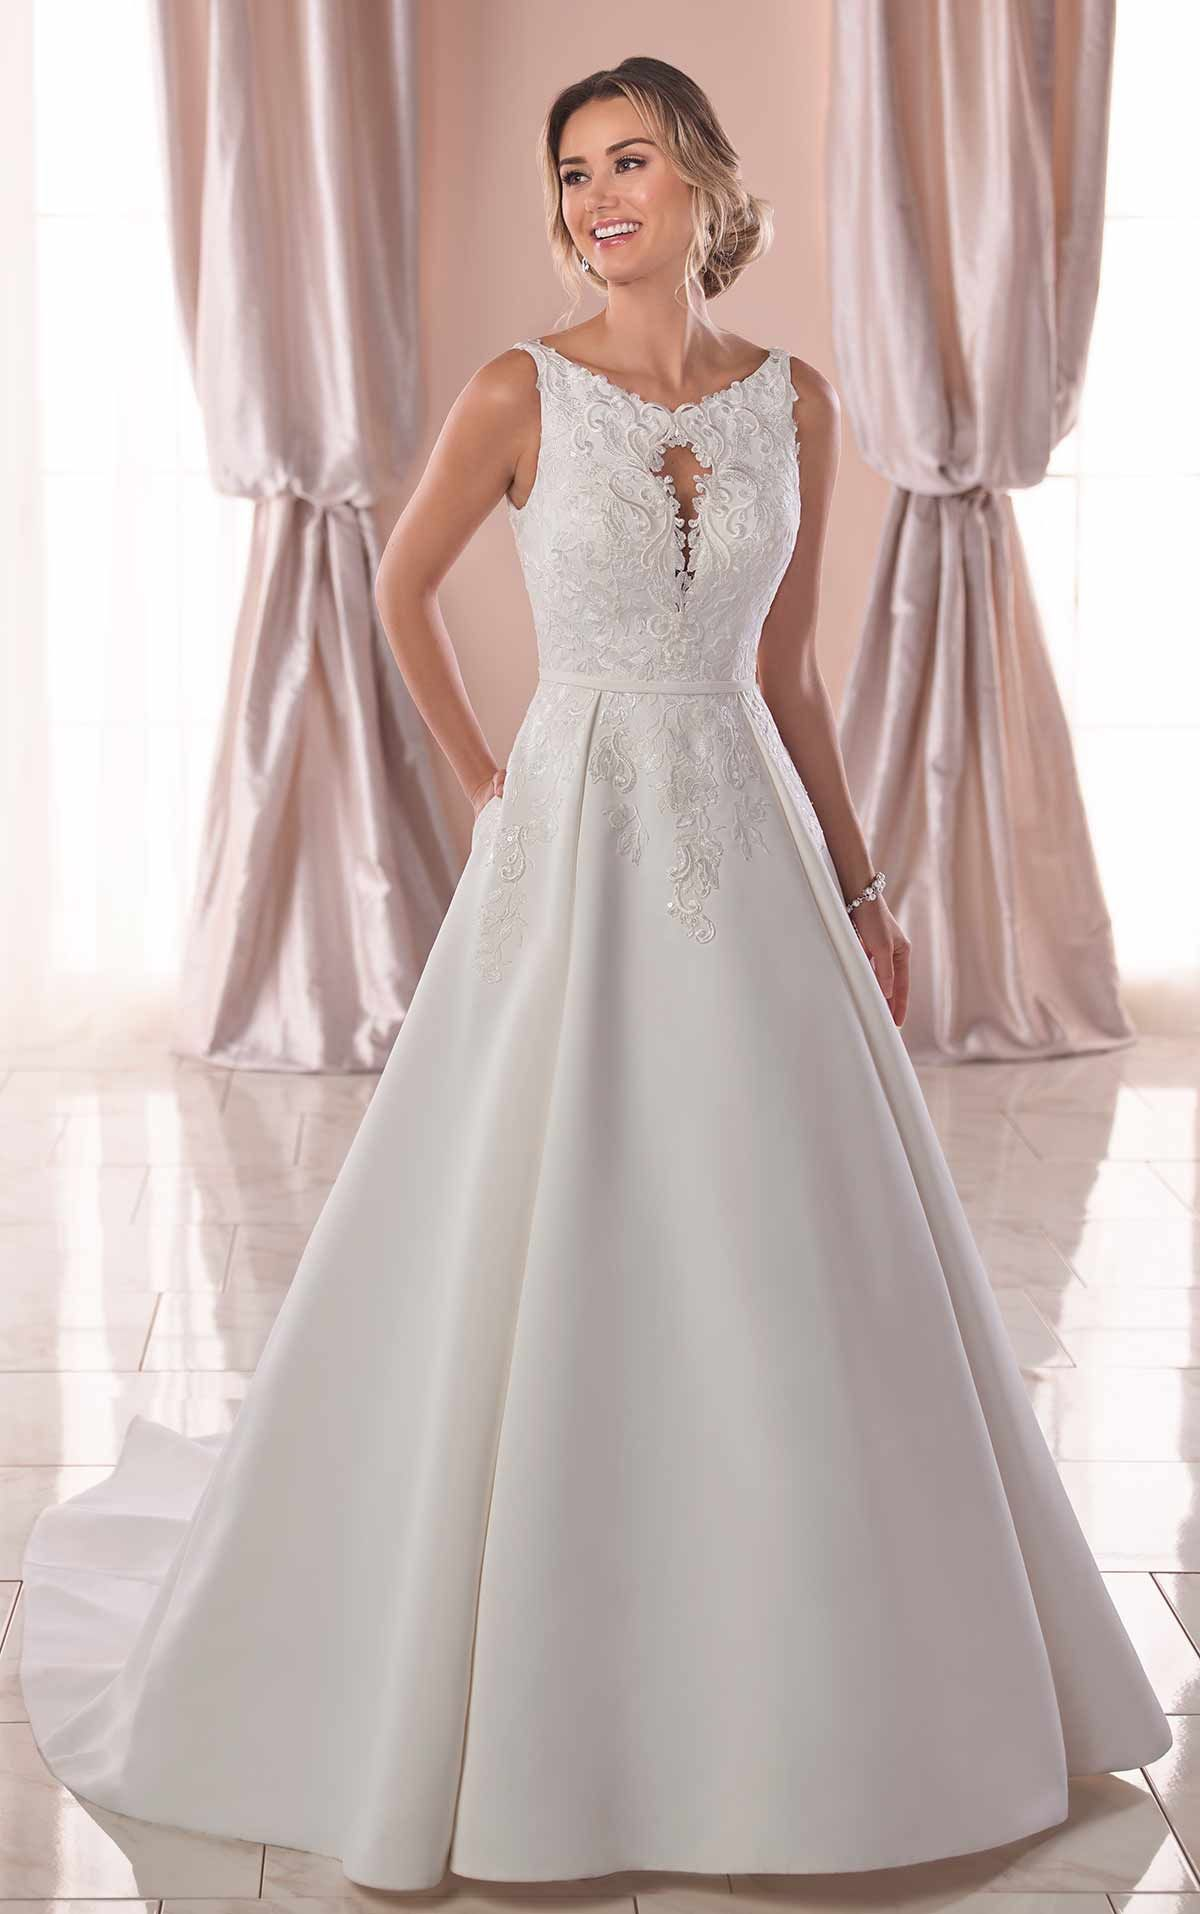 Julia Halseene in 2020 Unique wedding gowns, Lace gown